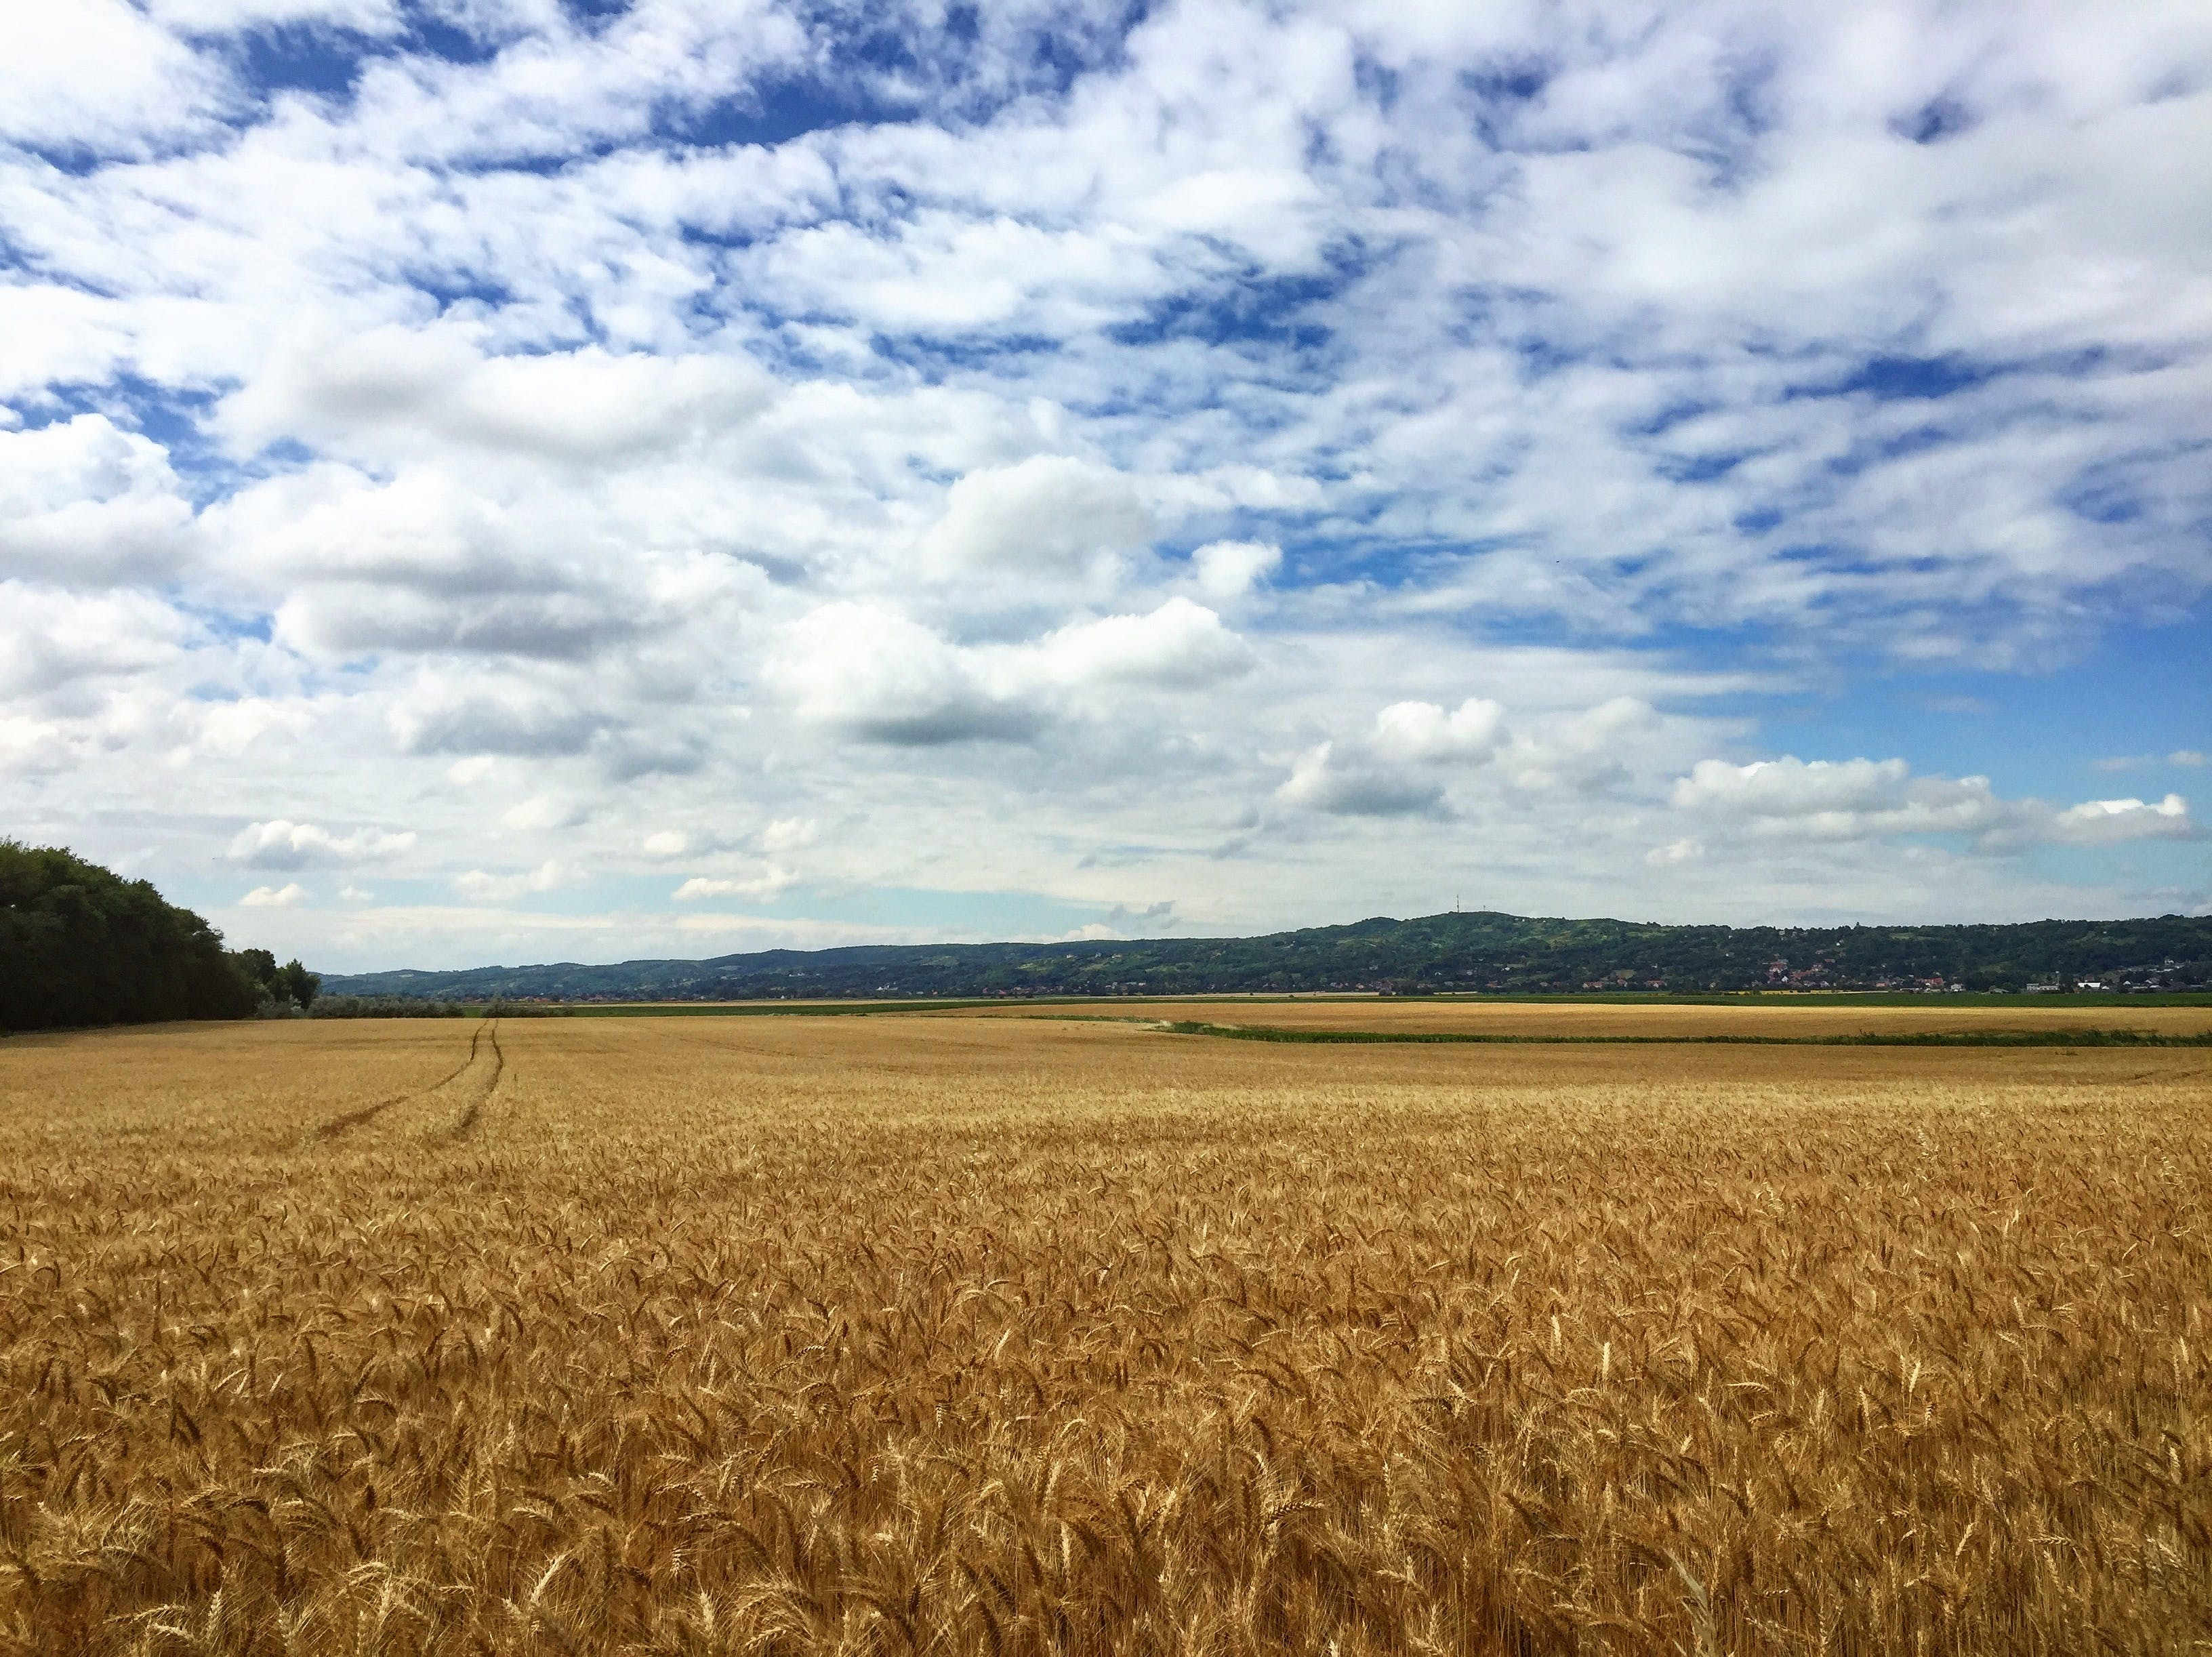 Wheat Field Under Blue Sky